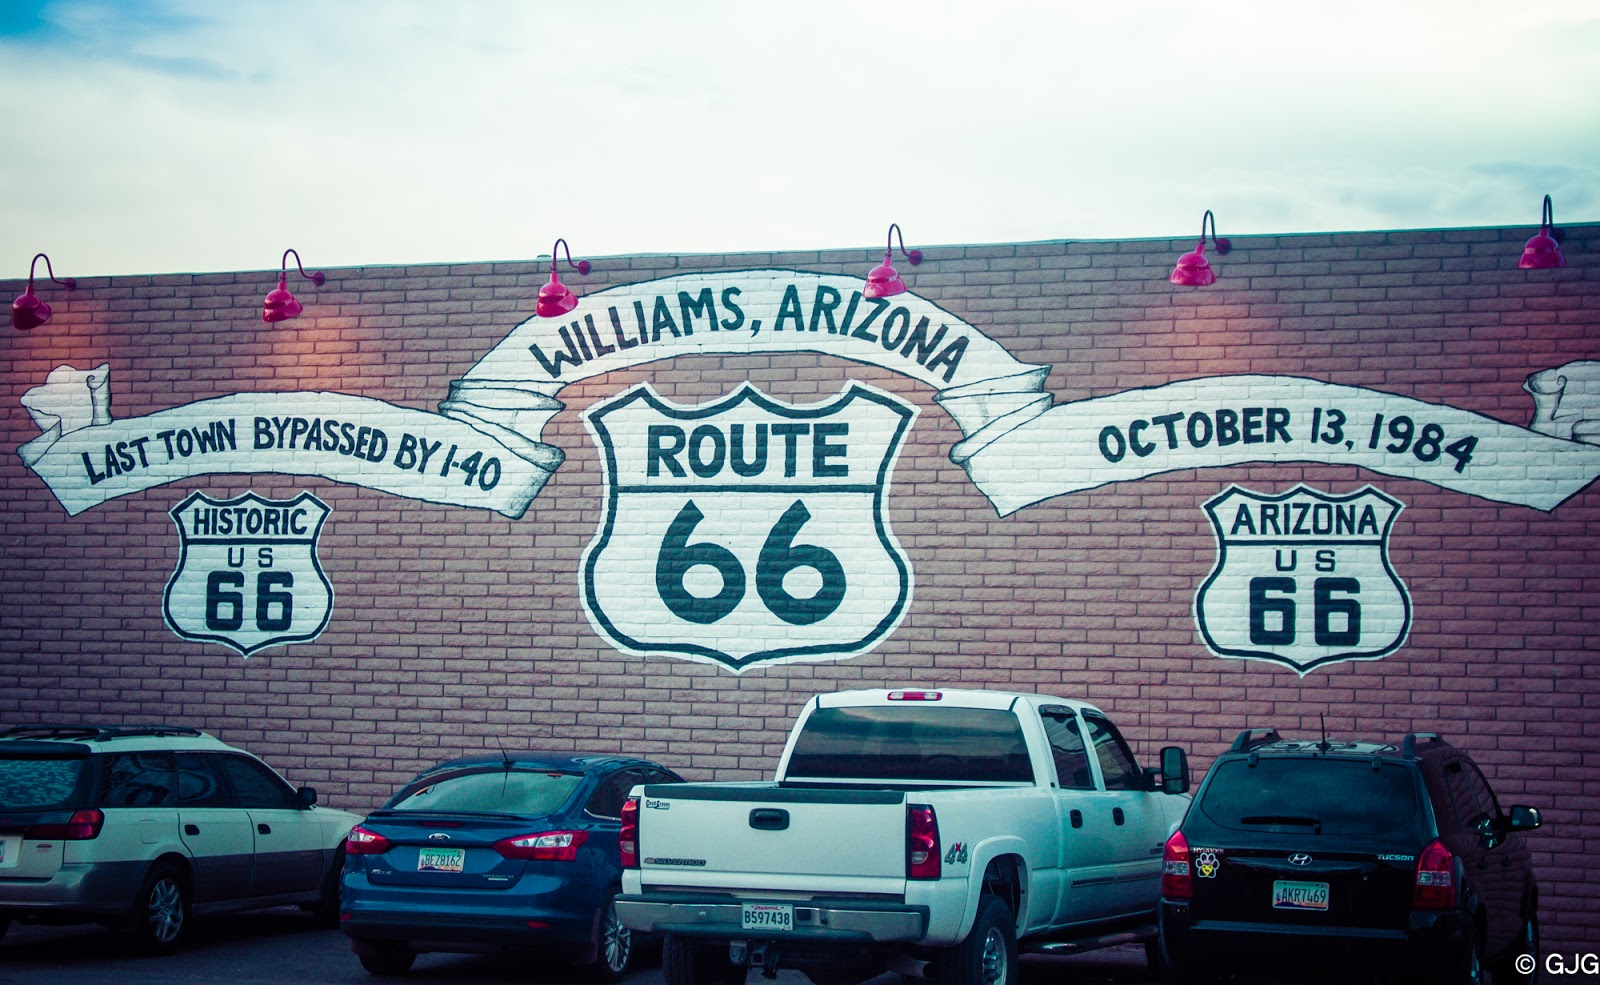 Historic US Route 66 Williams, Arizona